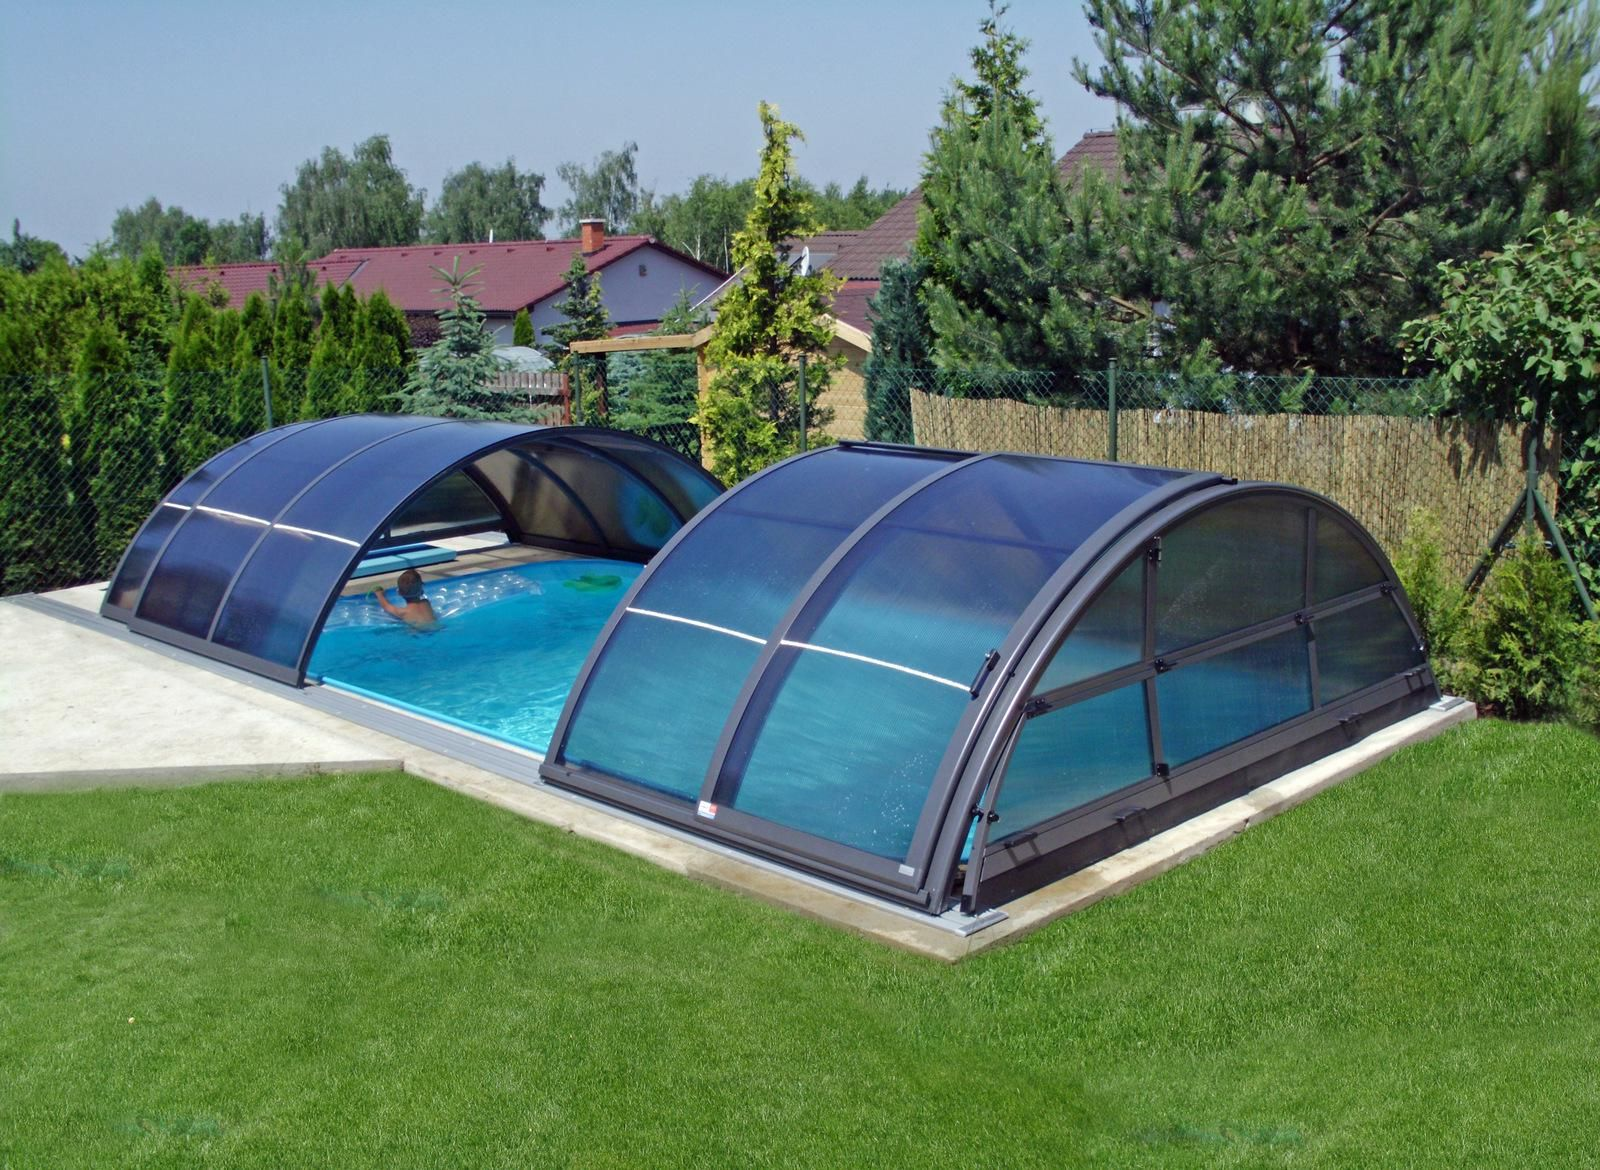 Swiming Pools Titanium Cool Pool Cover With Automated Pool Cover ...